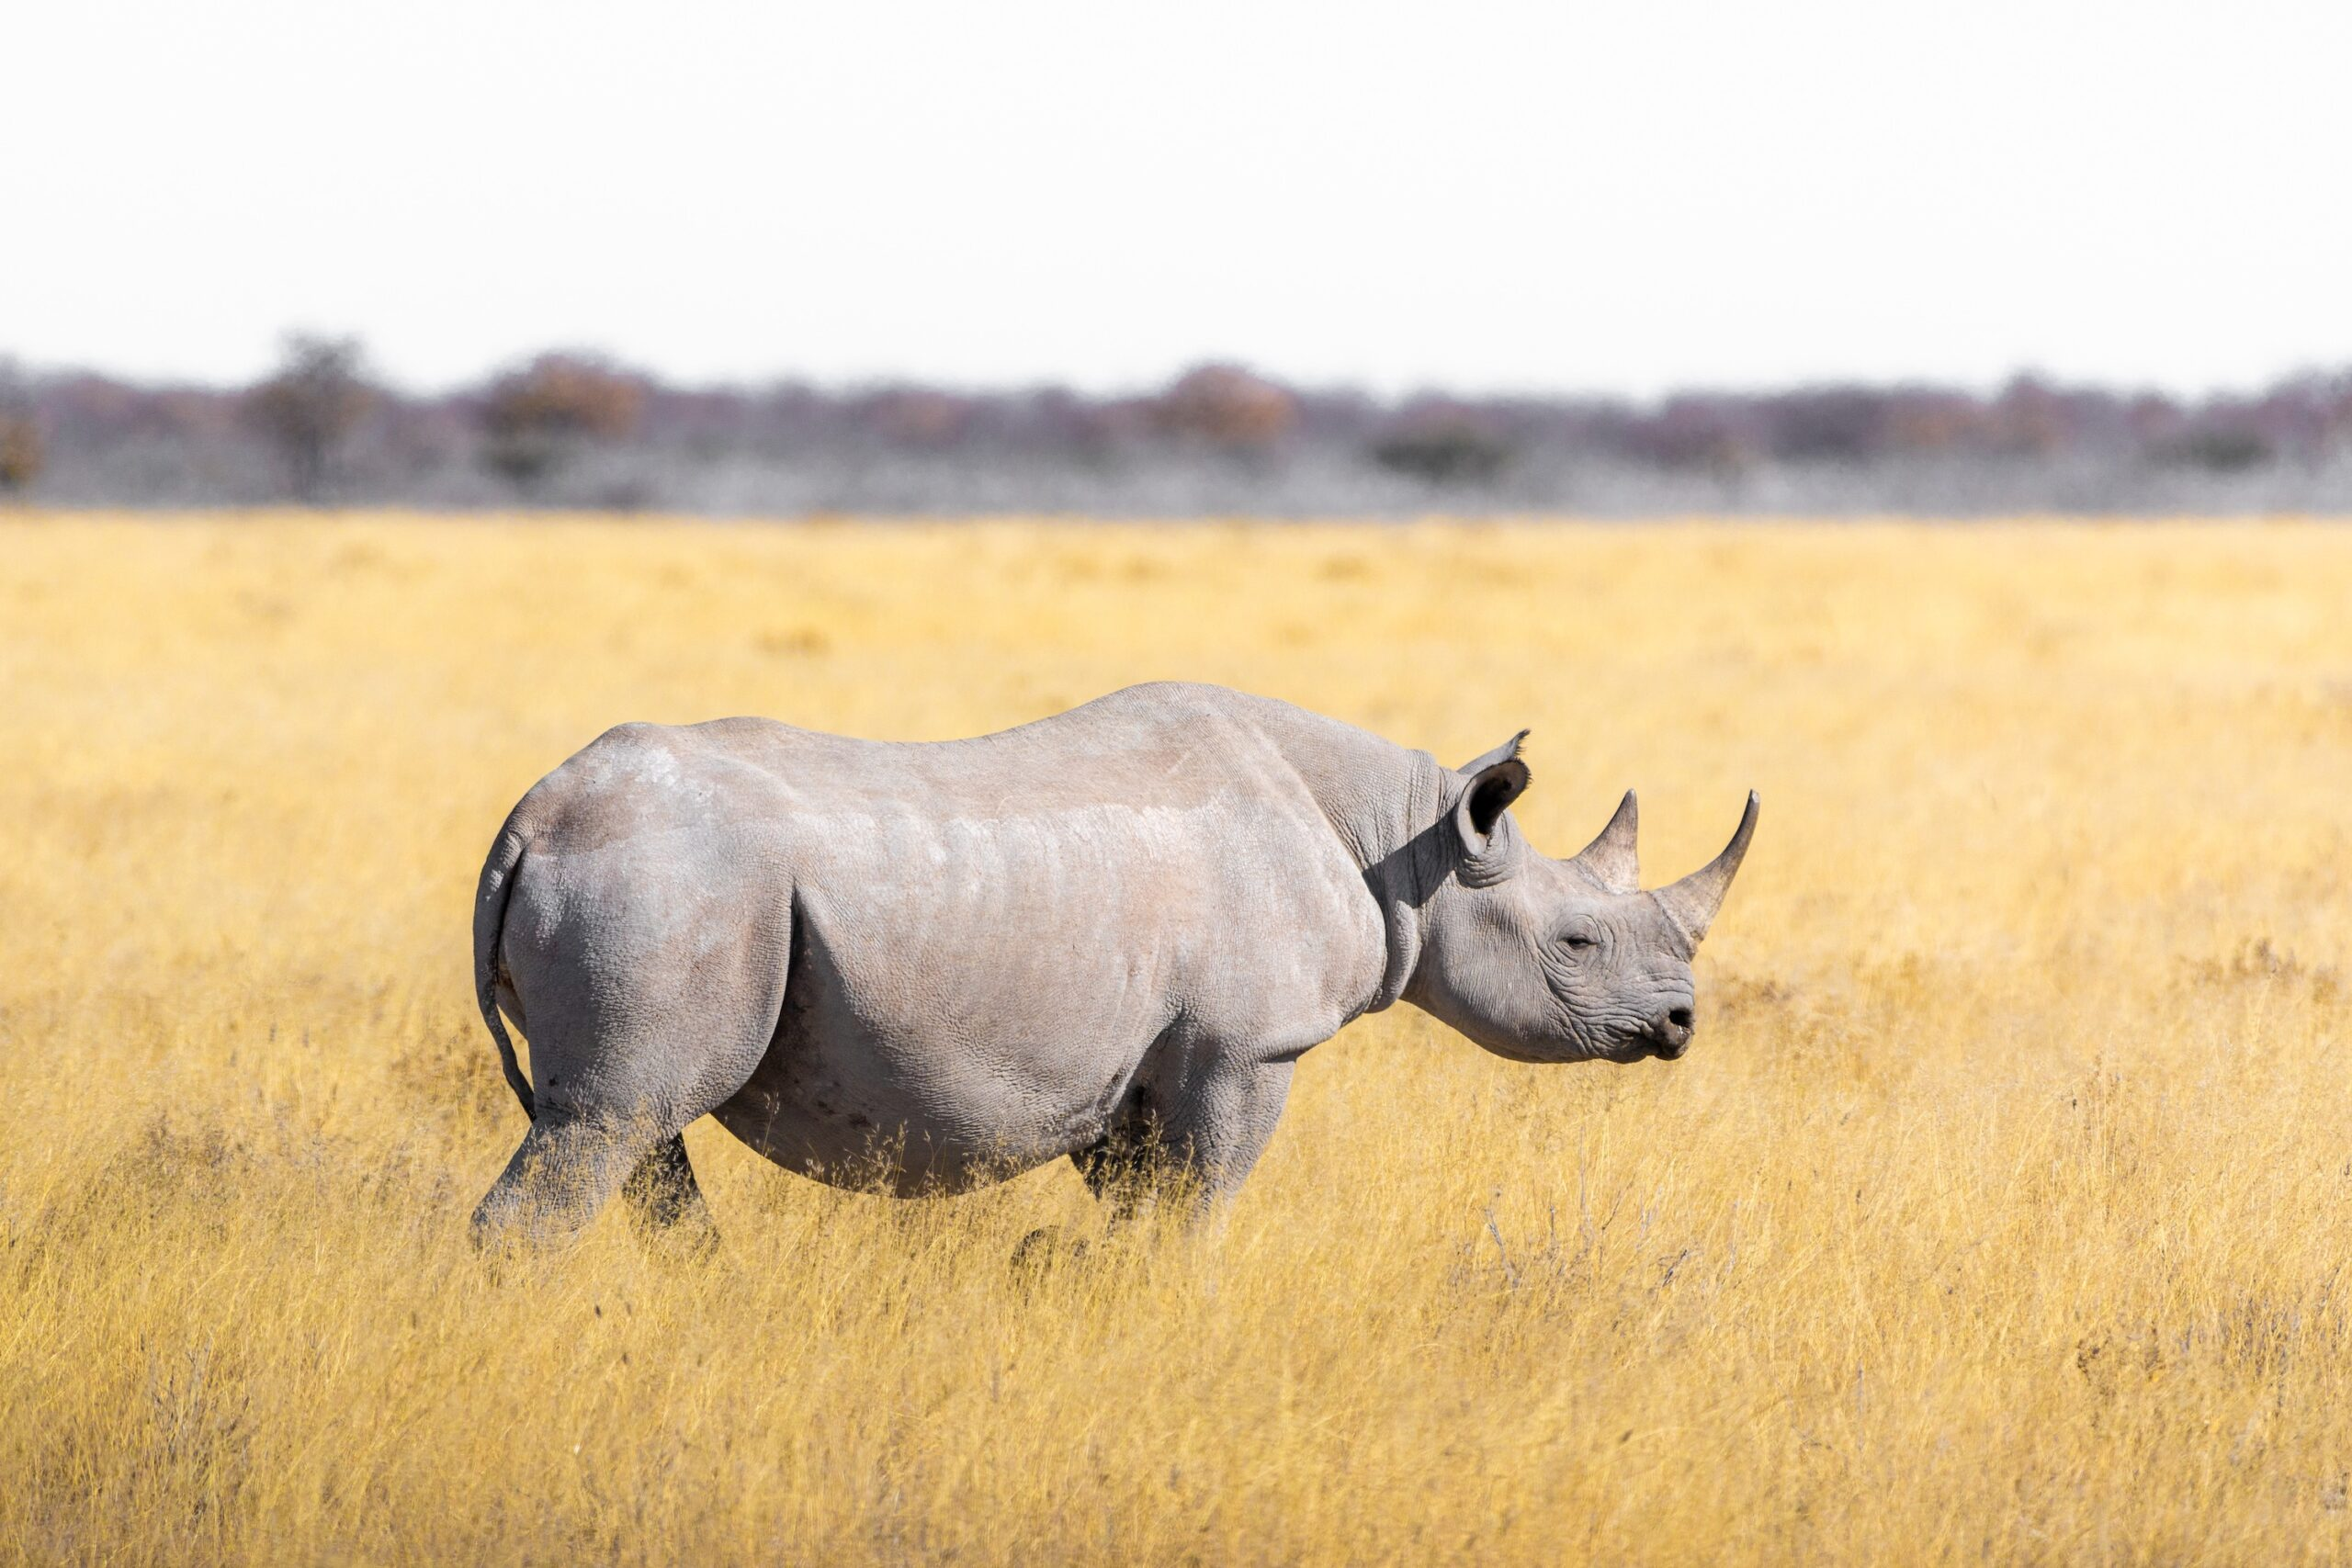 A white rhino walking across savanna grassland